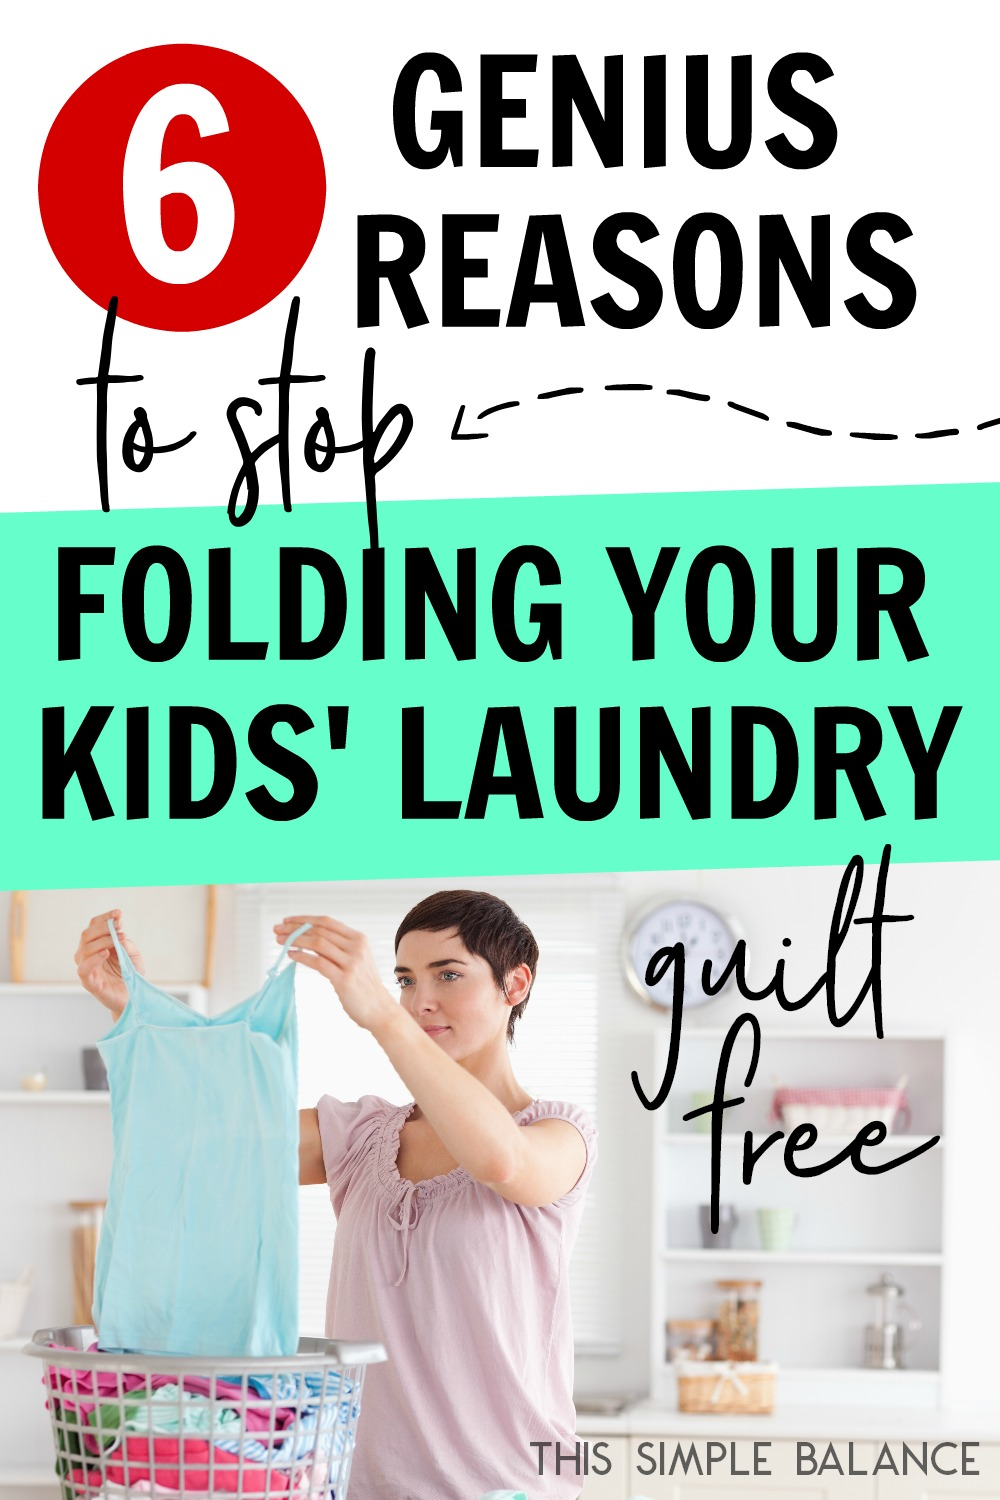 Folding laundry is a big (and overwhelming) part of a mom's job. But what if you didn't have to? Sometimes, moms need permission to STOP doing things they think they should do. Get permission with these 6 genius reasons.